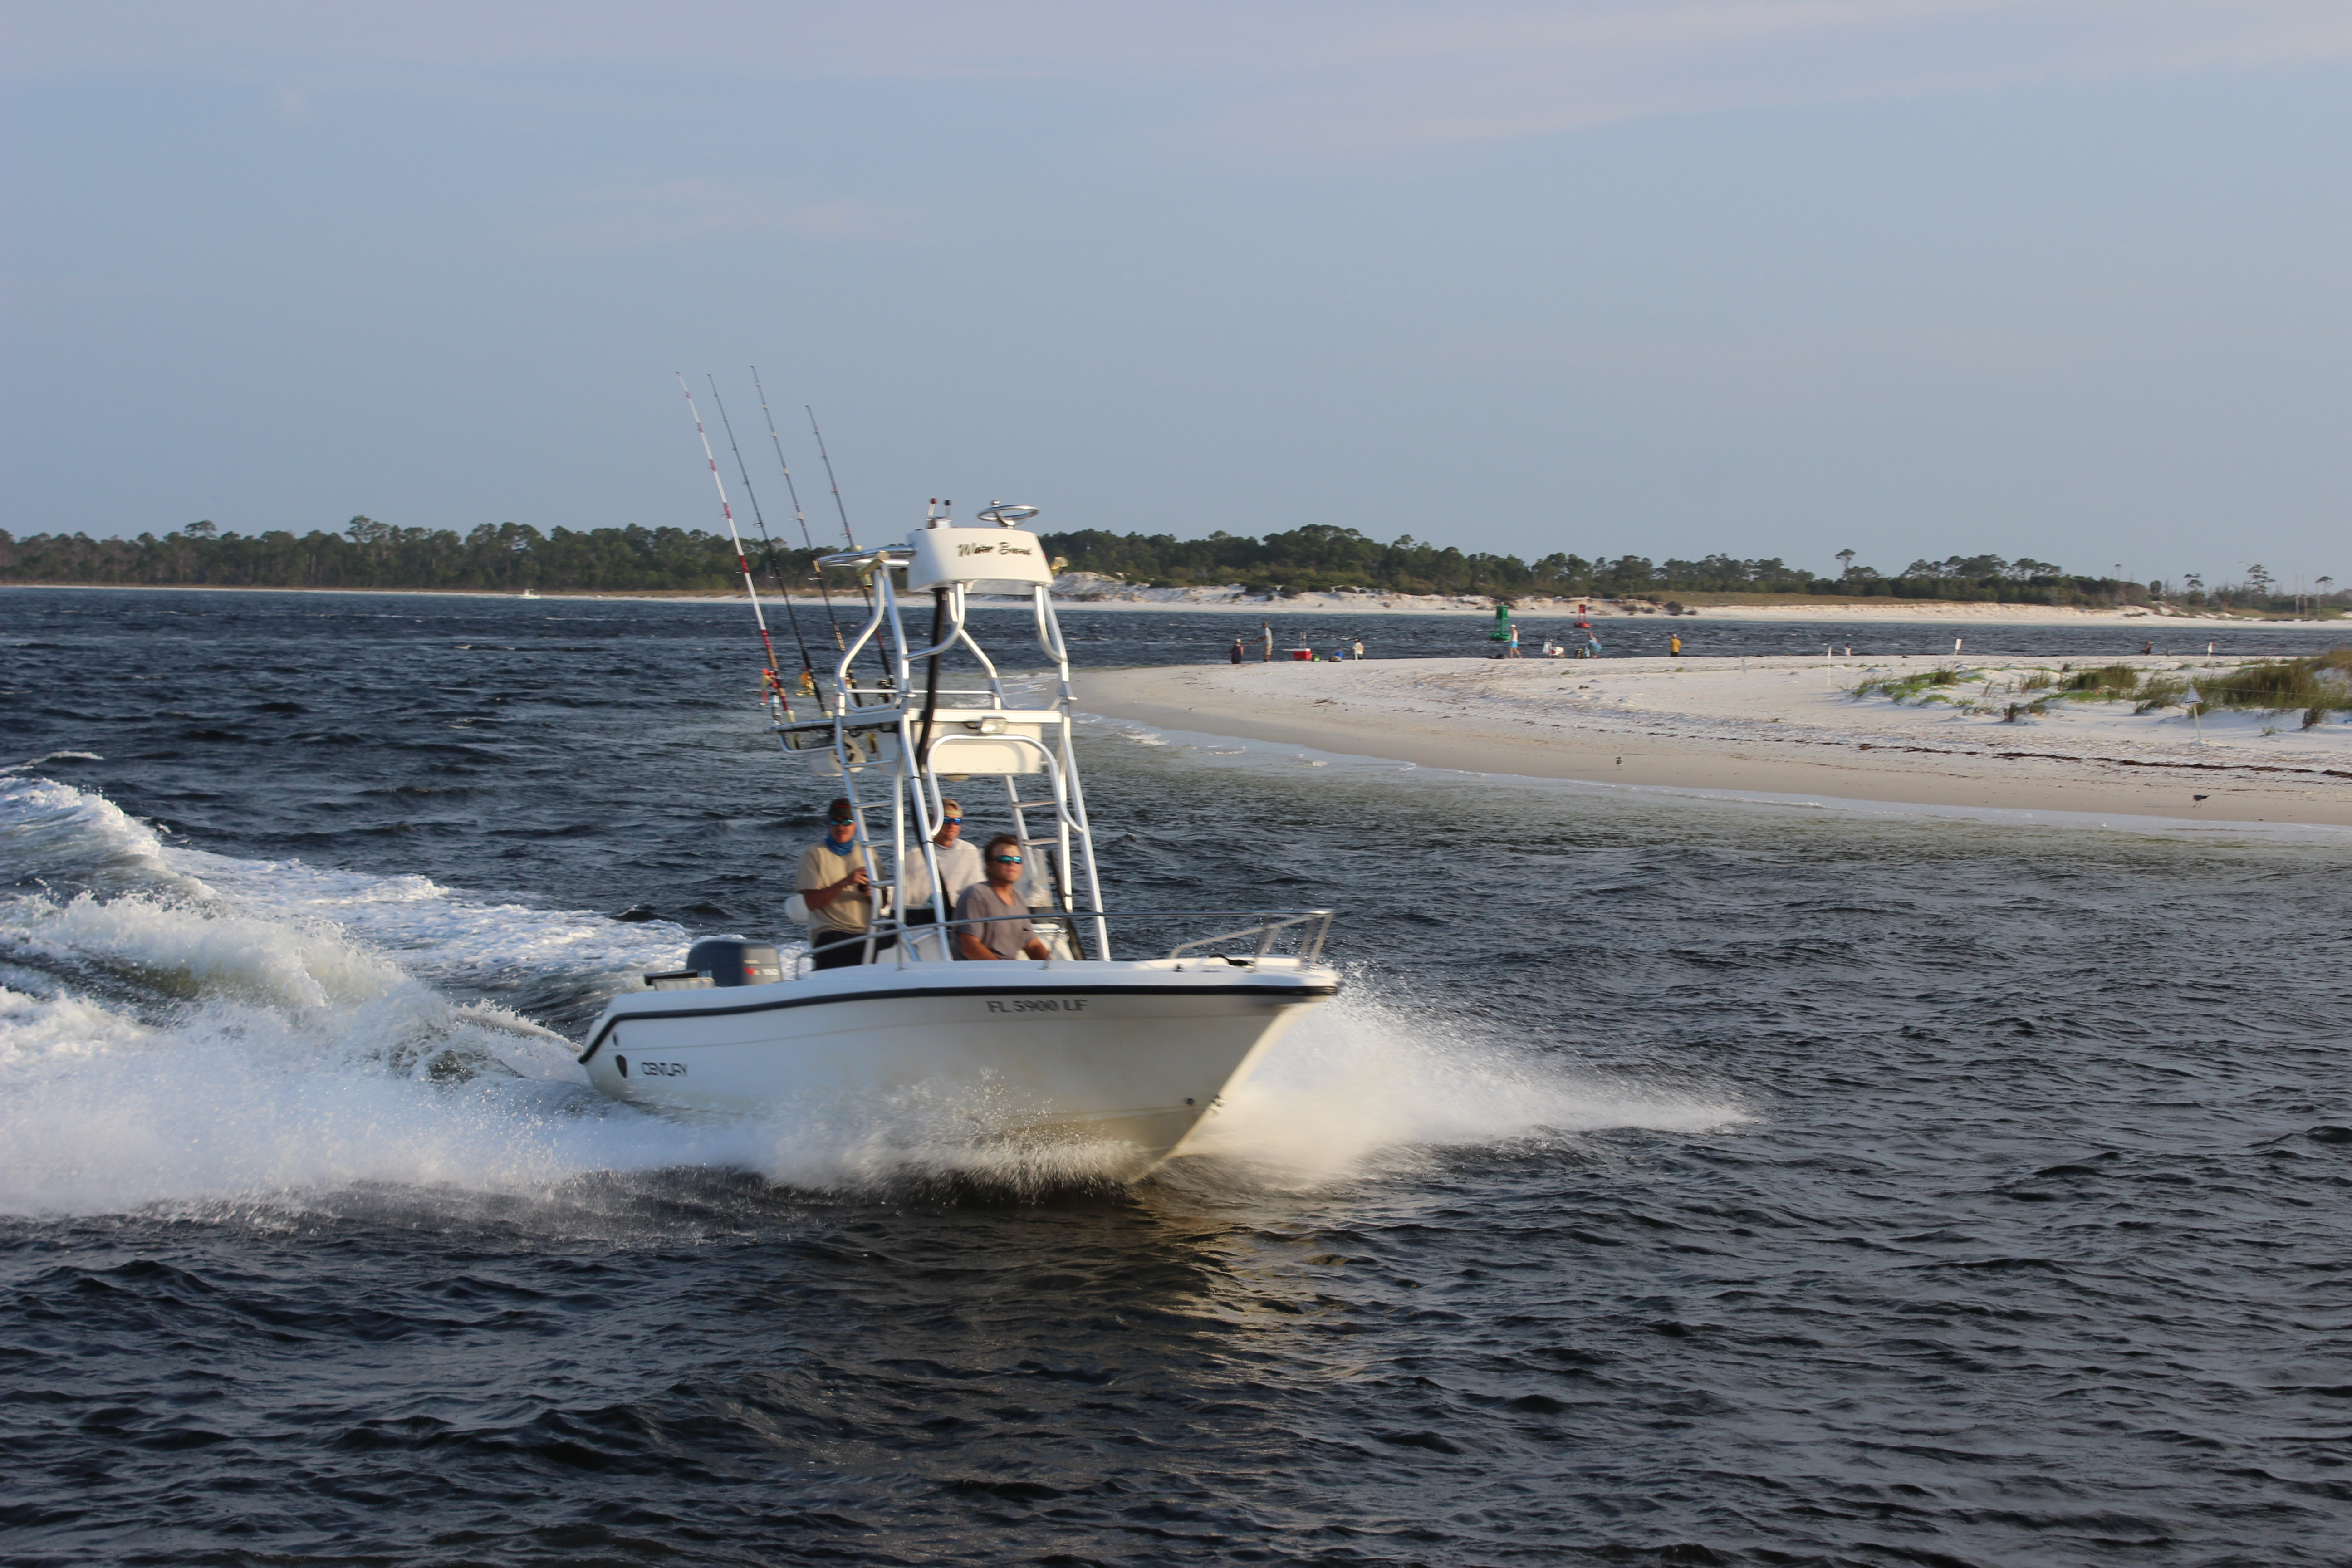 Boat rounding deepwater point in PCB